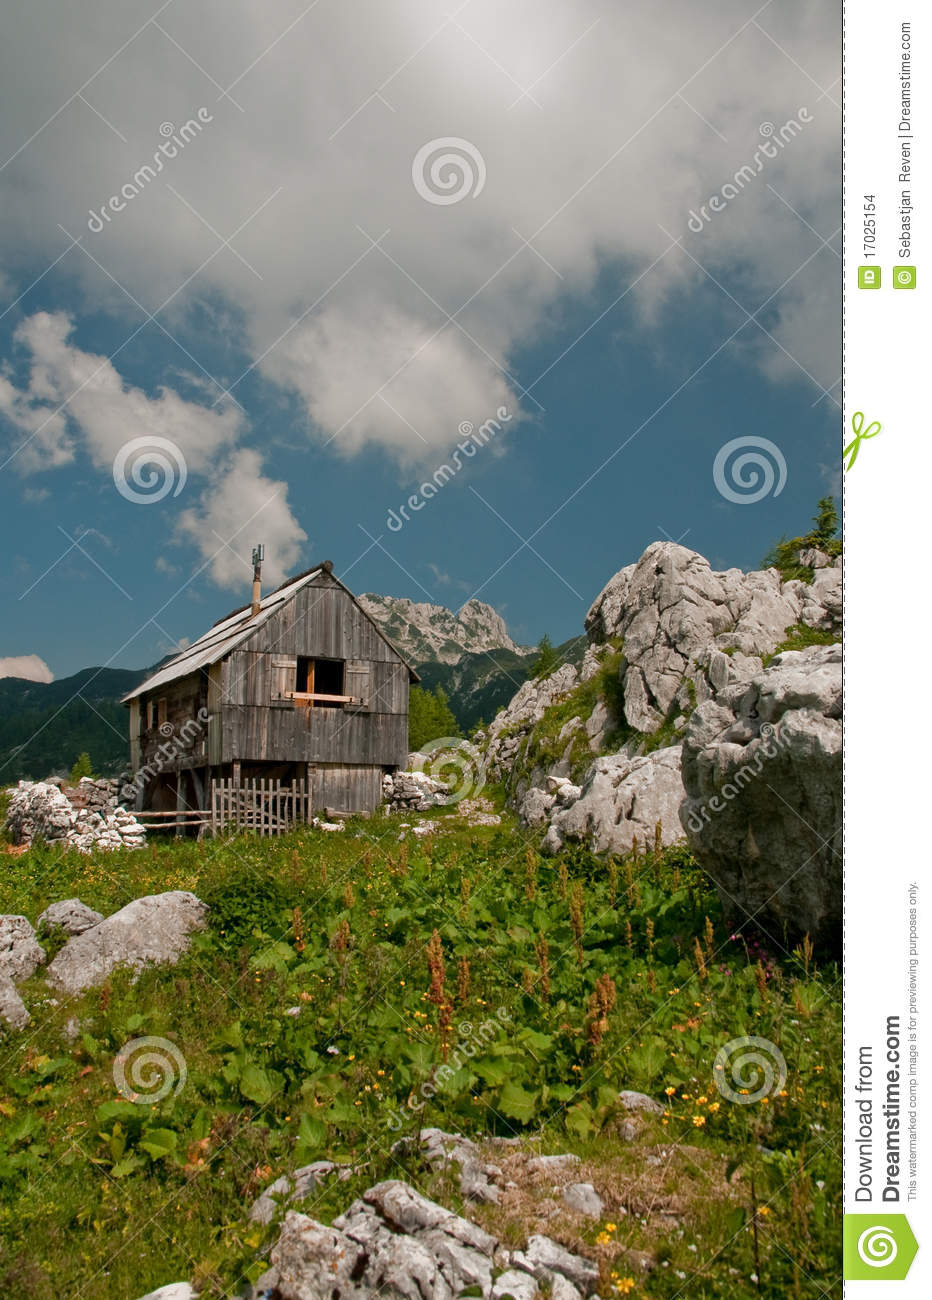 Alpine cottage in the mountains stock images image 17025154 for Cottage in the mountains